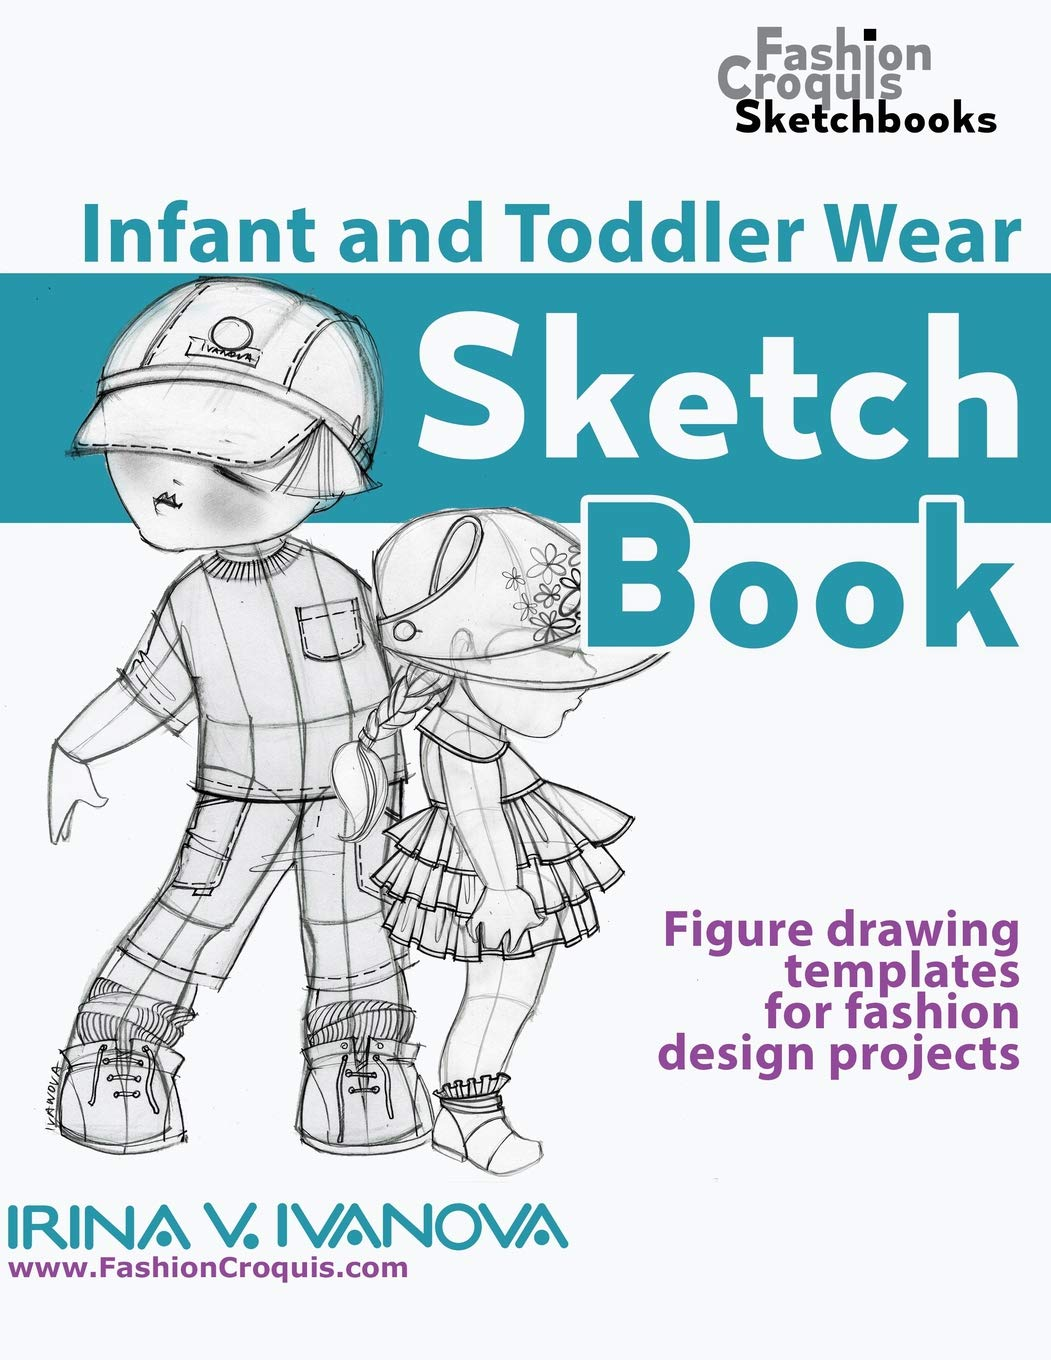 Infant And Toddler Wear Sketchbook Figure Drawing Templates For Fashion Design Projects Fashion Croquis Sketchbooks Ivanova Irina V 9781798146231 Amazon Com Books